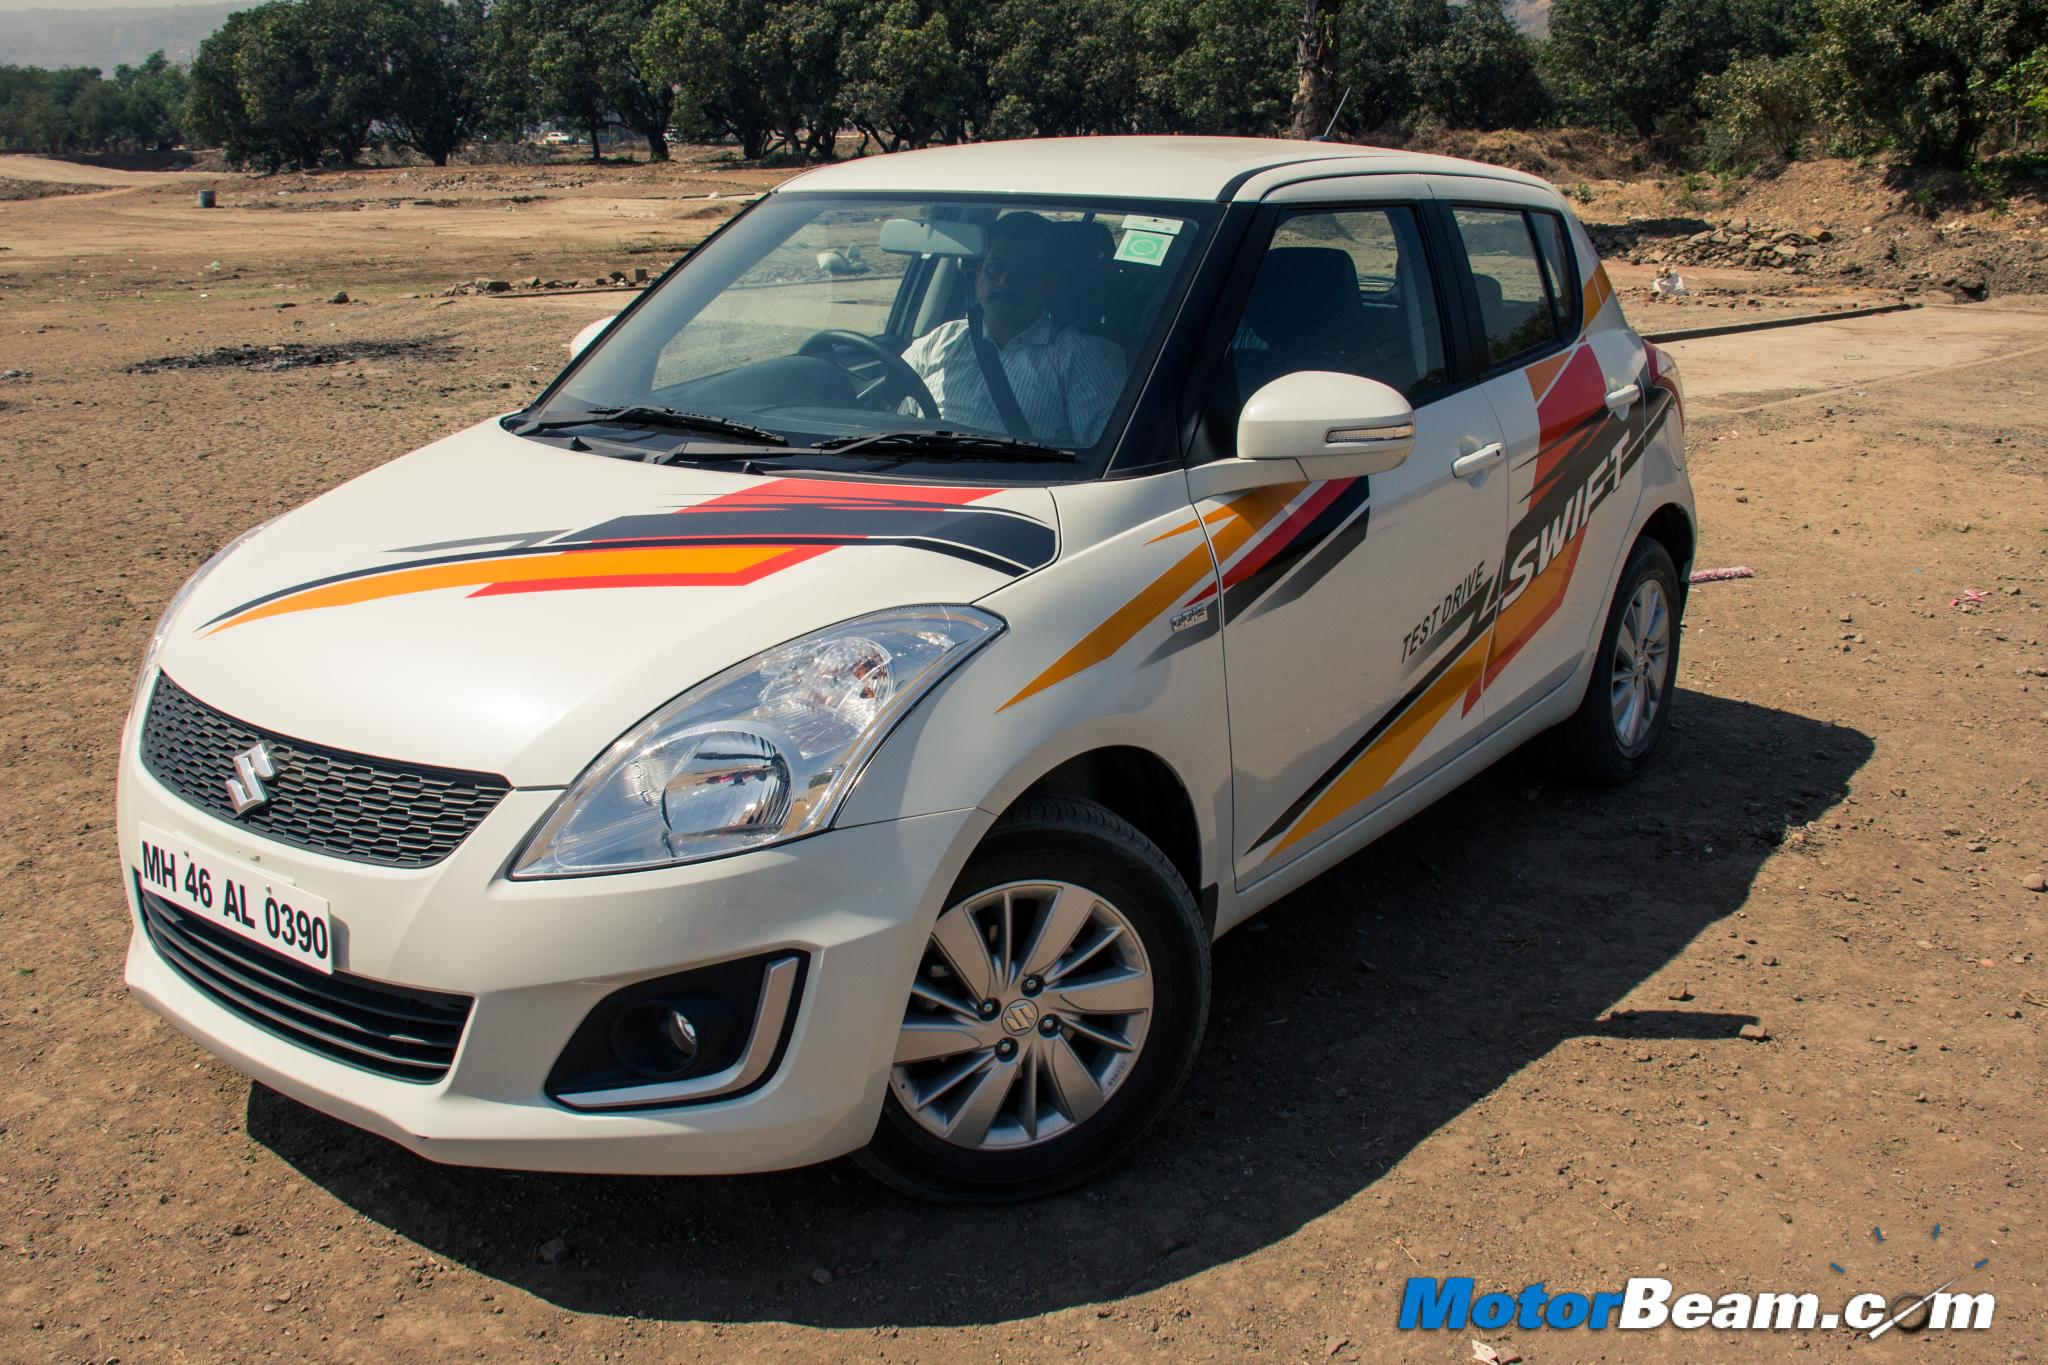 2015 Maruti Swift Facelift Test Drive Review on 2015 new sidekick, 2015 new ford, 2015 new superb, 2015 new rock, 2015 new terios, 2015 new bolero, 2015 new lincoln, 2015 new alto, 2015 new dodge,